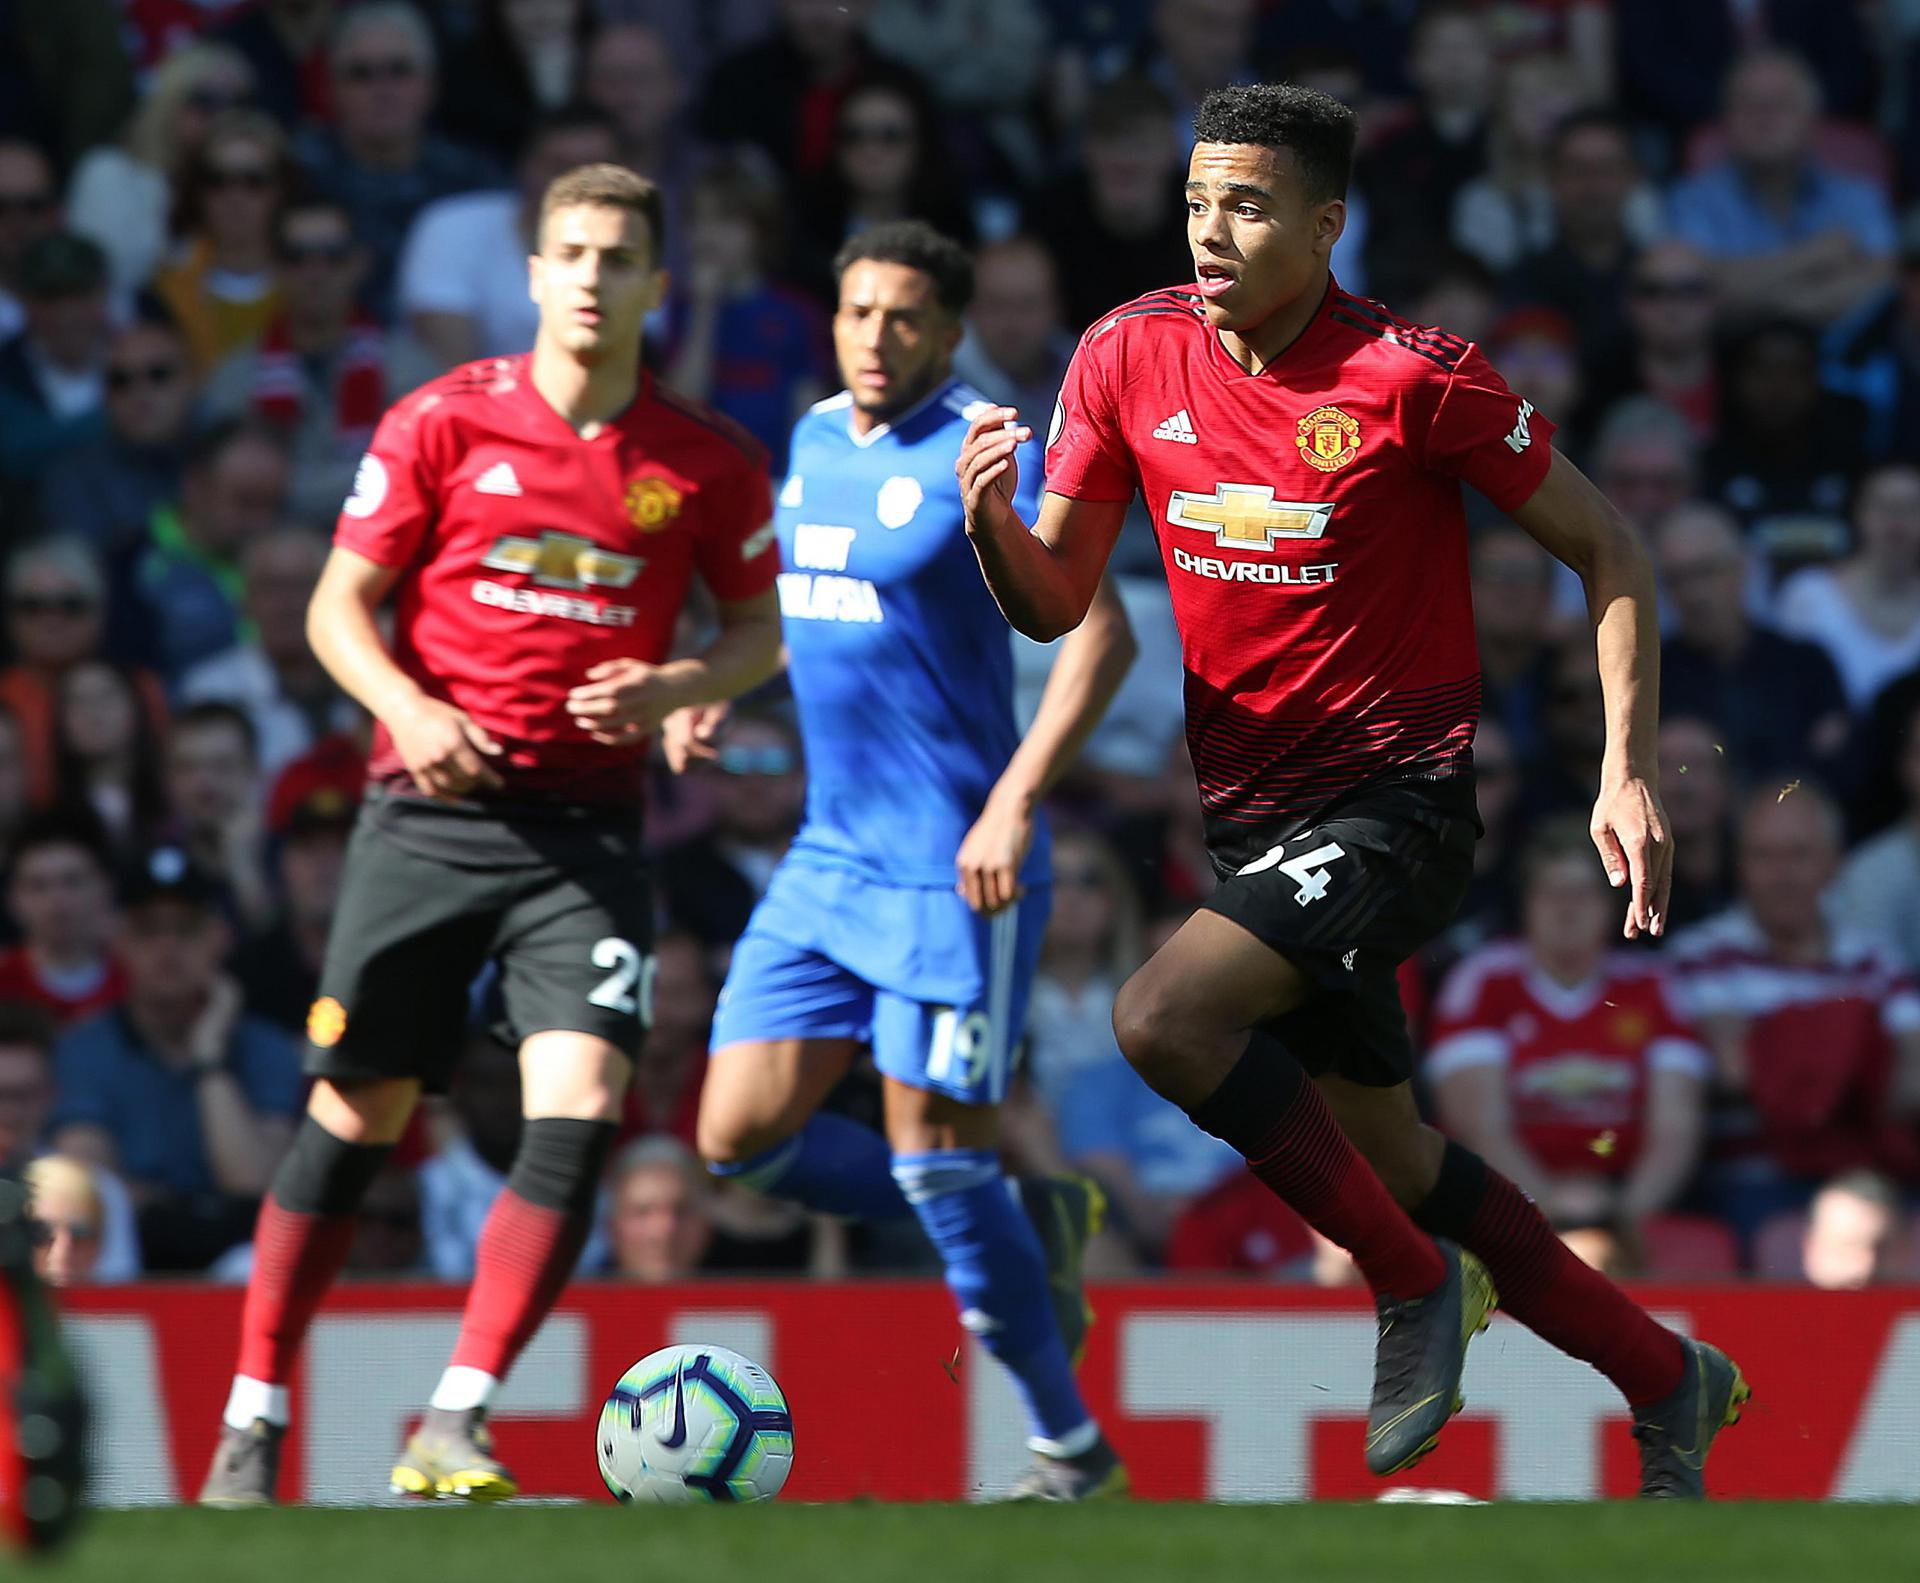 Mason Greenwood in action for Manchester United.